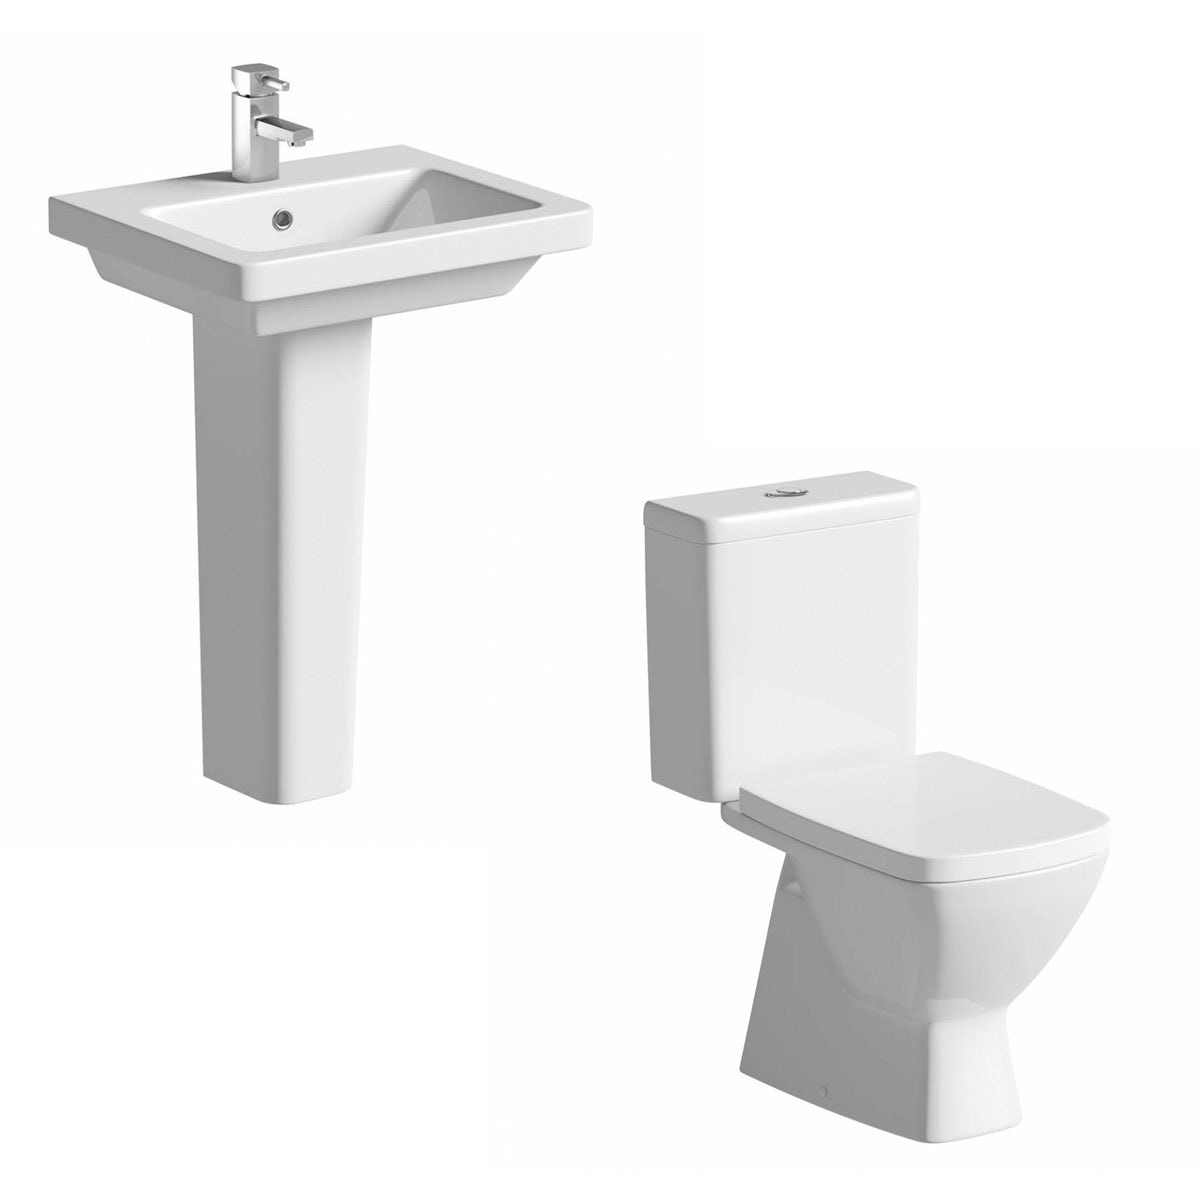 Mode Cooper cloakroom suite with full pedestal basin 550mm